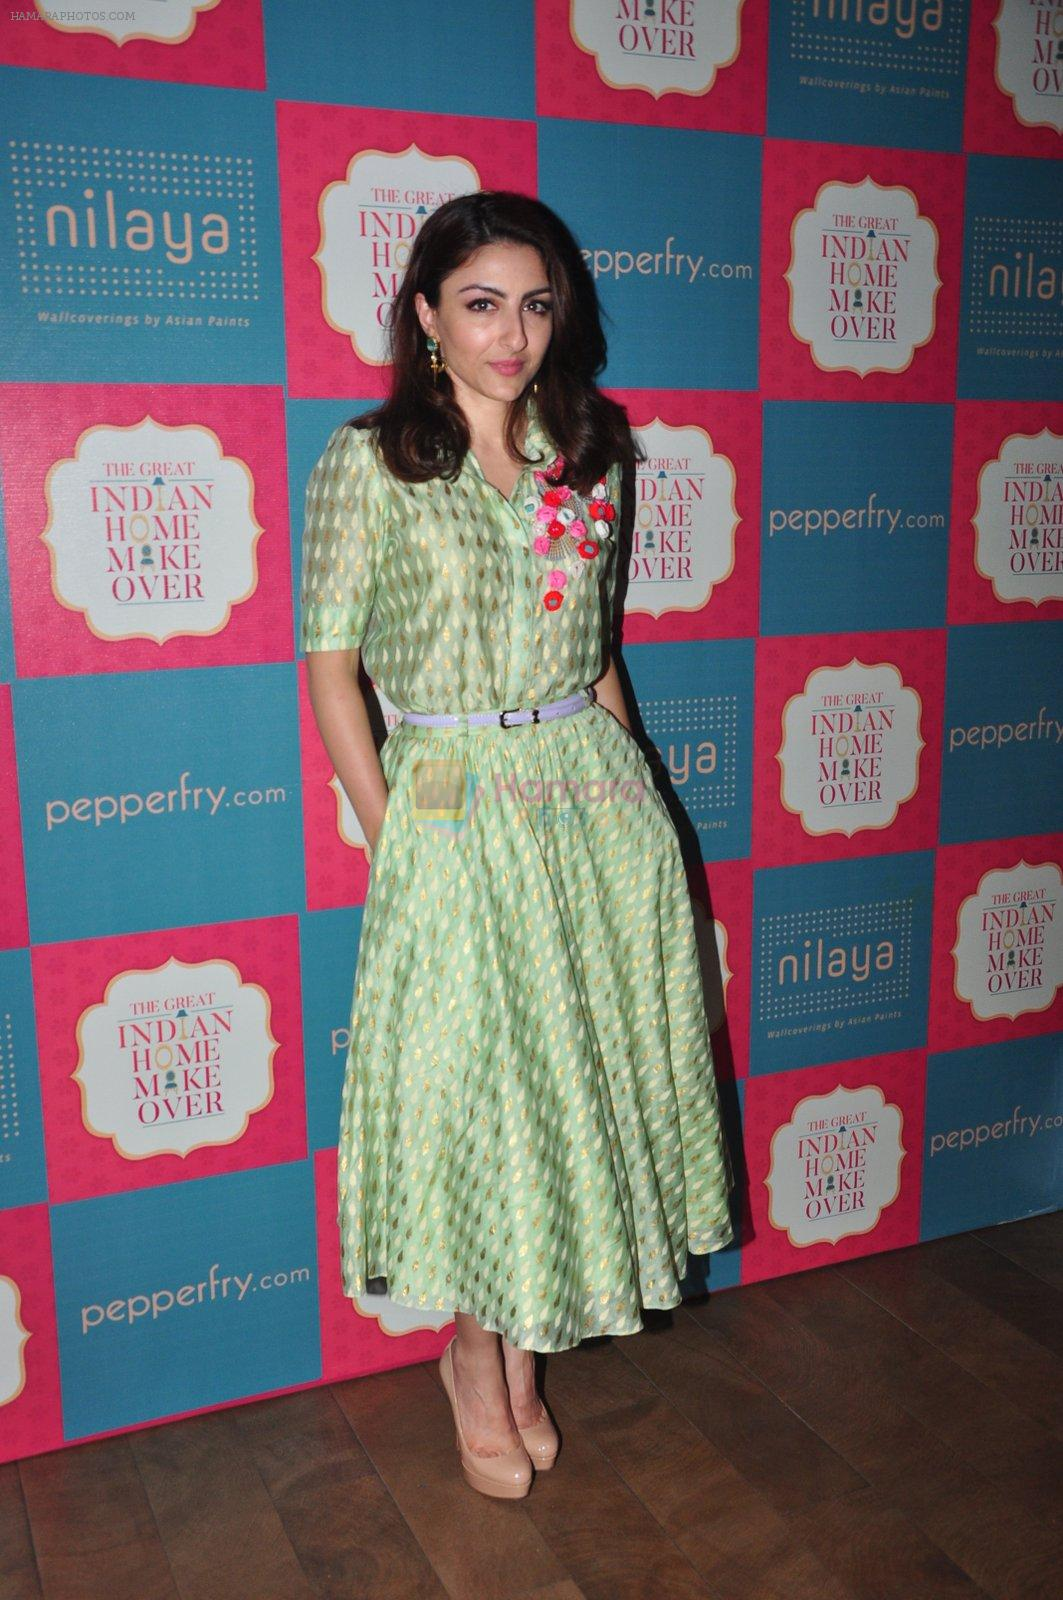 Soha Ali Khan to promote Great Indian Home Maker on 10th Aug 2016